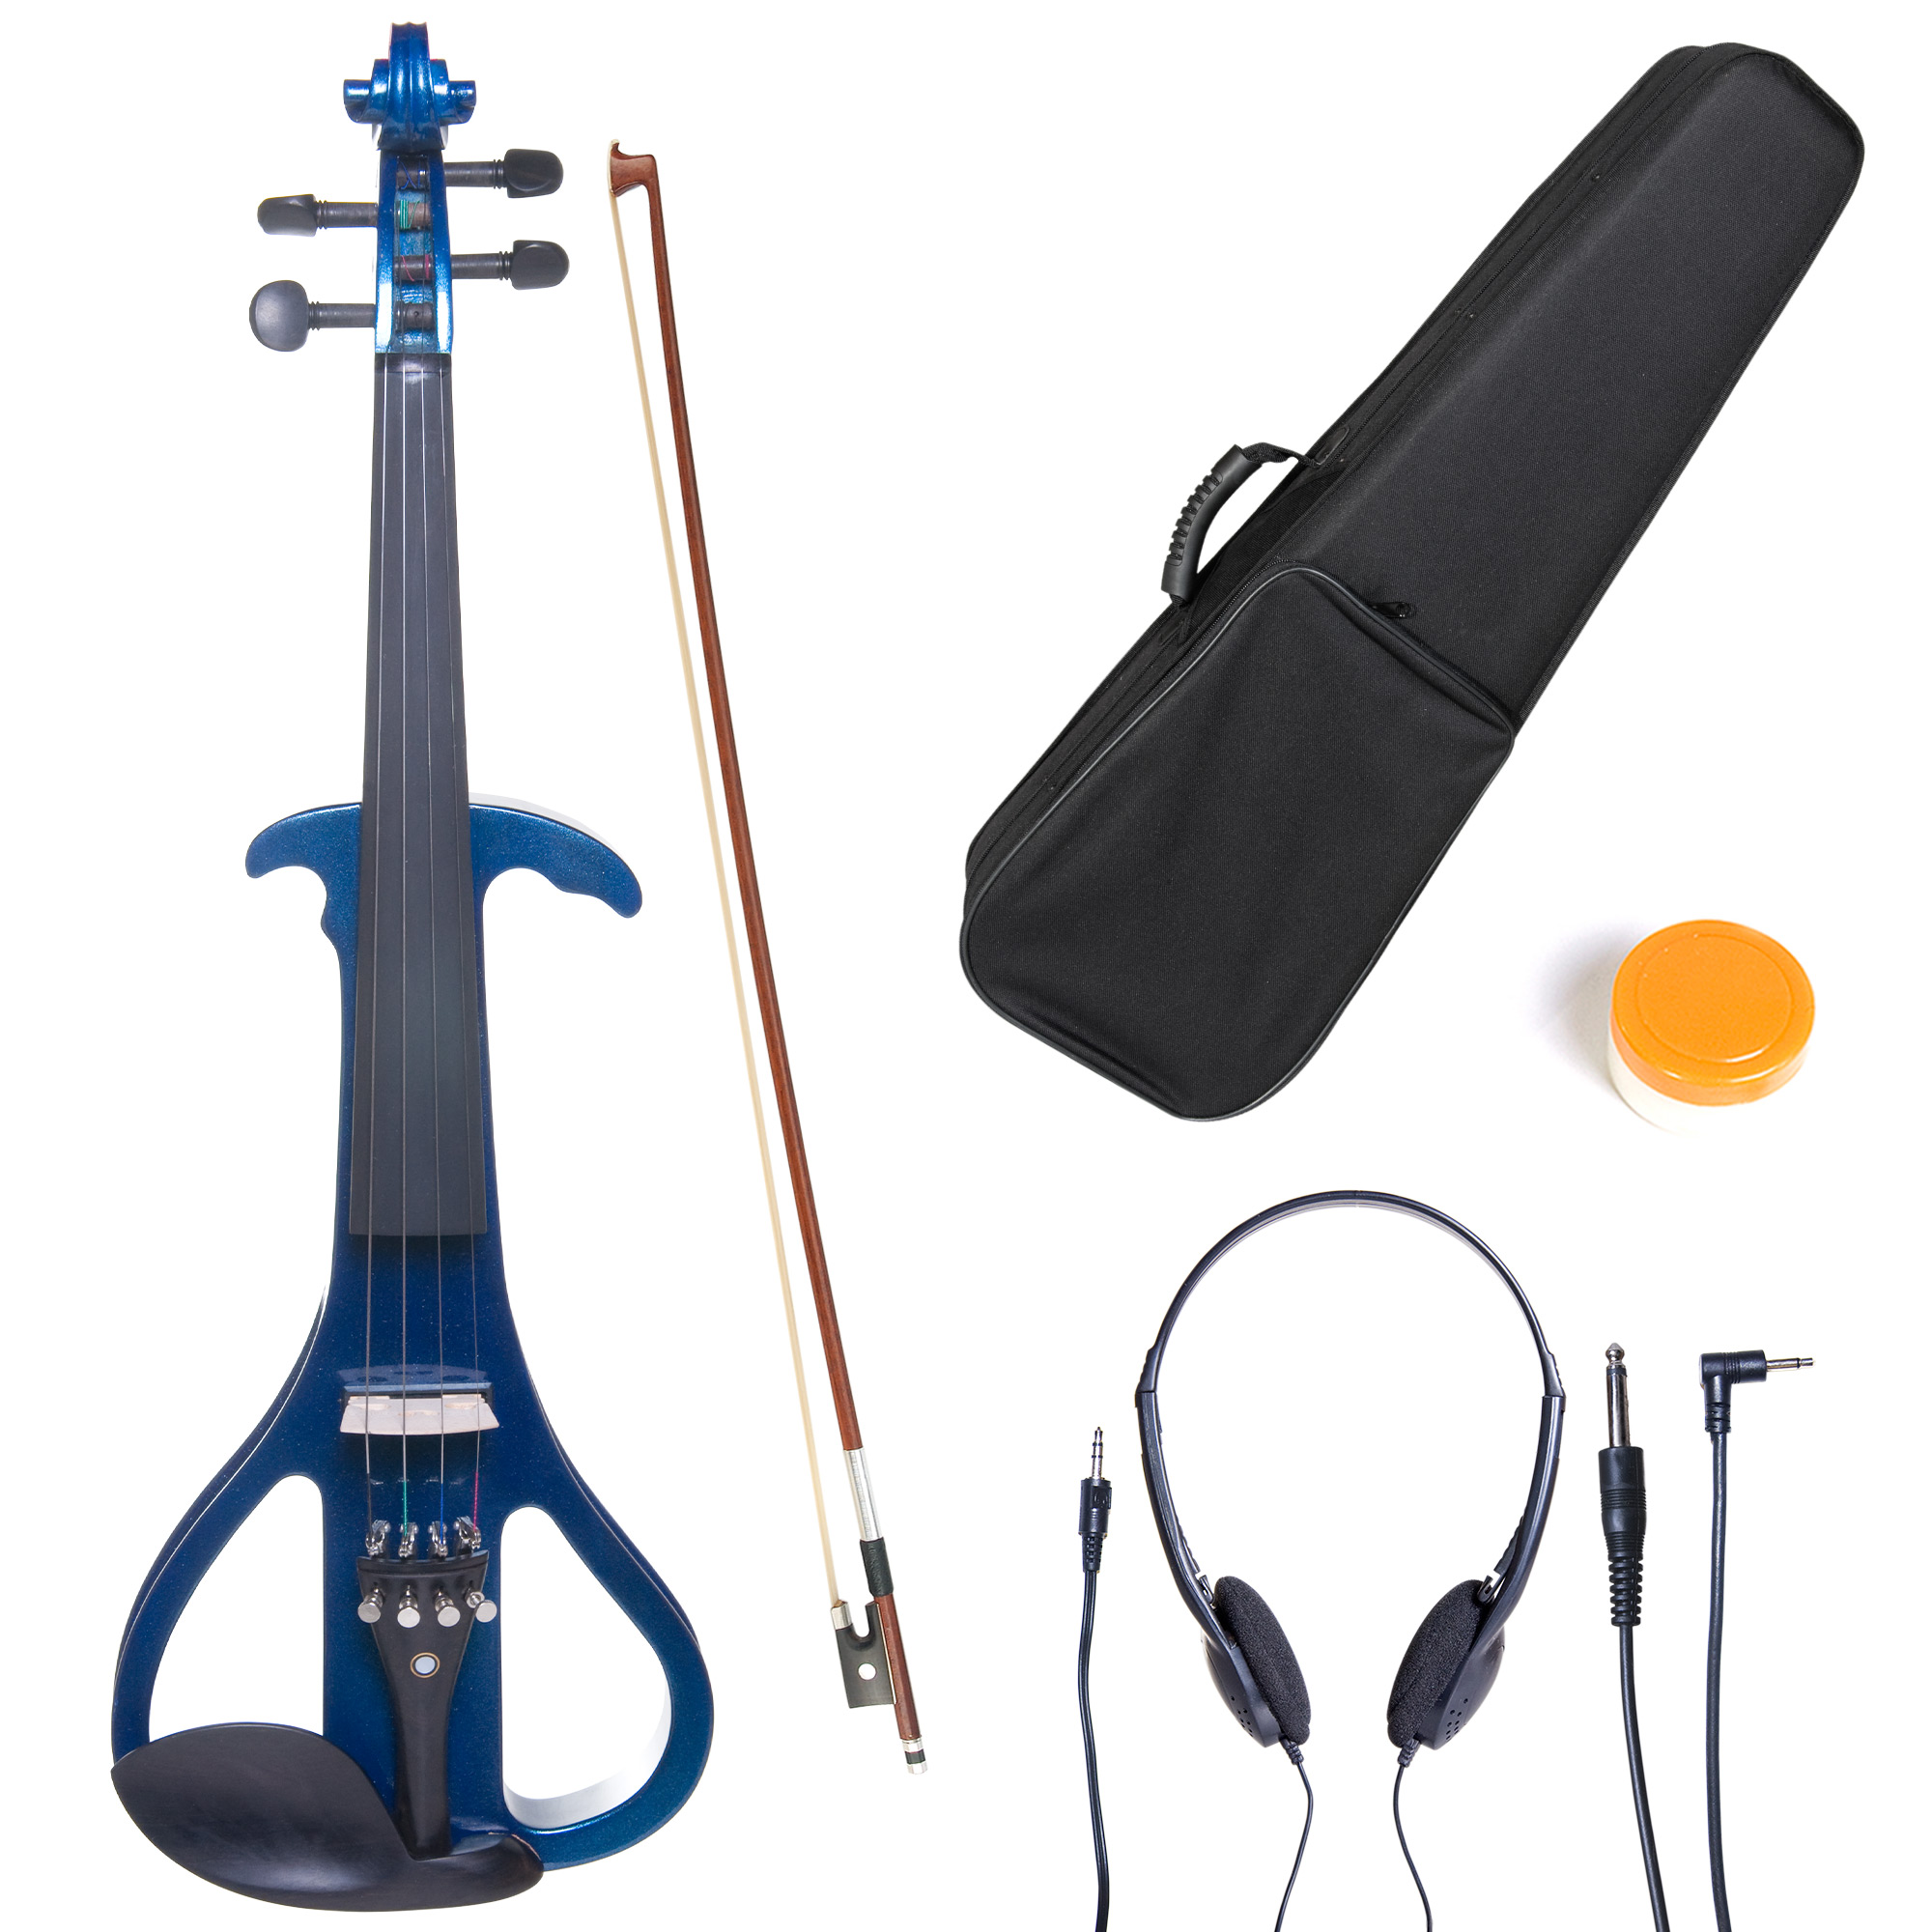 Cecilio 4/4 CEVN-4BL Solidwood Metallic Blue Electric/Silent Violin with Ebony Fittings-Full Size